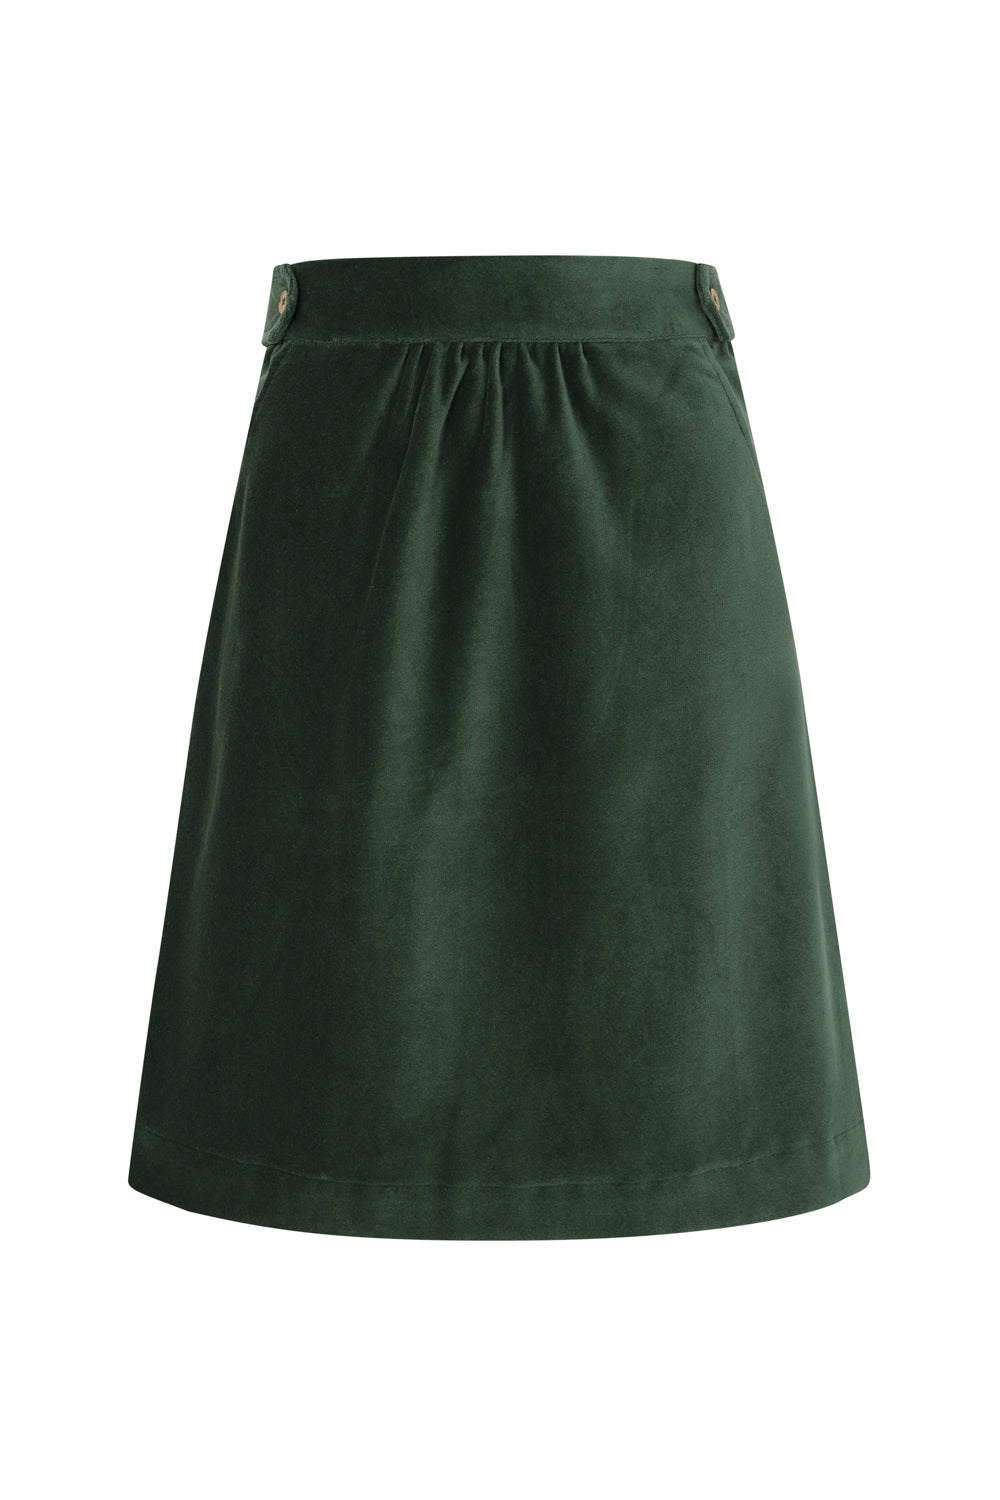 East Skirt - Dark Green Solid